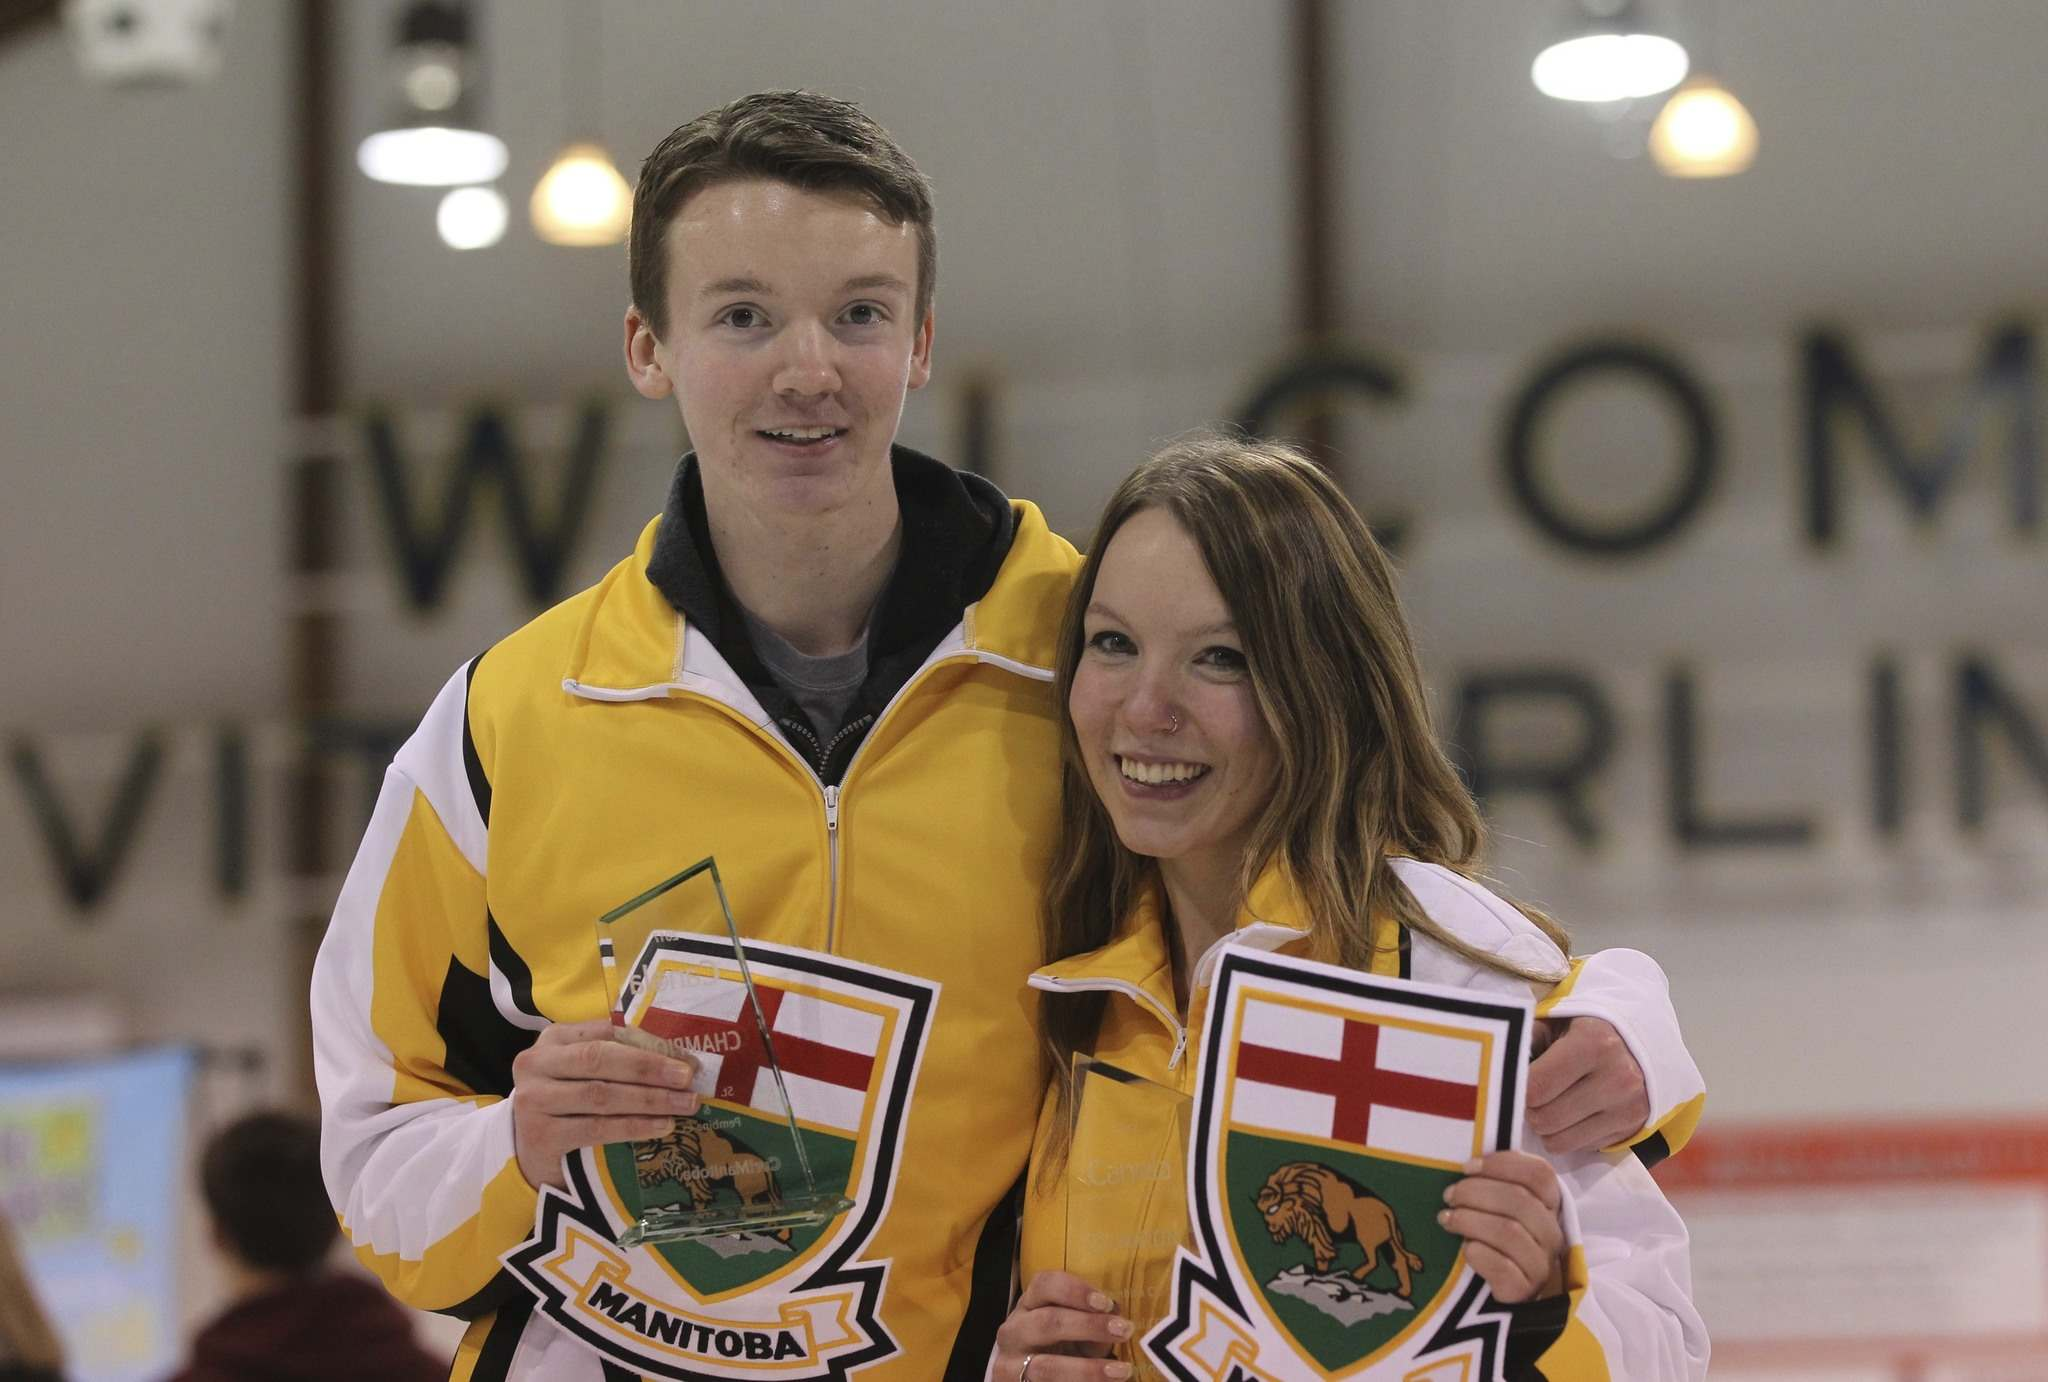 RUTH BONNEVILLE / WINNIPEG FREE PRESS</p><p>Assiniboine Memorial skip J.T. Ryan and his sister, Hailey, third on Laura Burtynk's Assiniboine Memorial Team, celebrate winning the 2017 Canola Junior Provincial Championships in the men's and women's categories at St. Vital Arena Friday afternoon.</p>